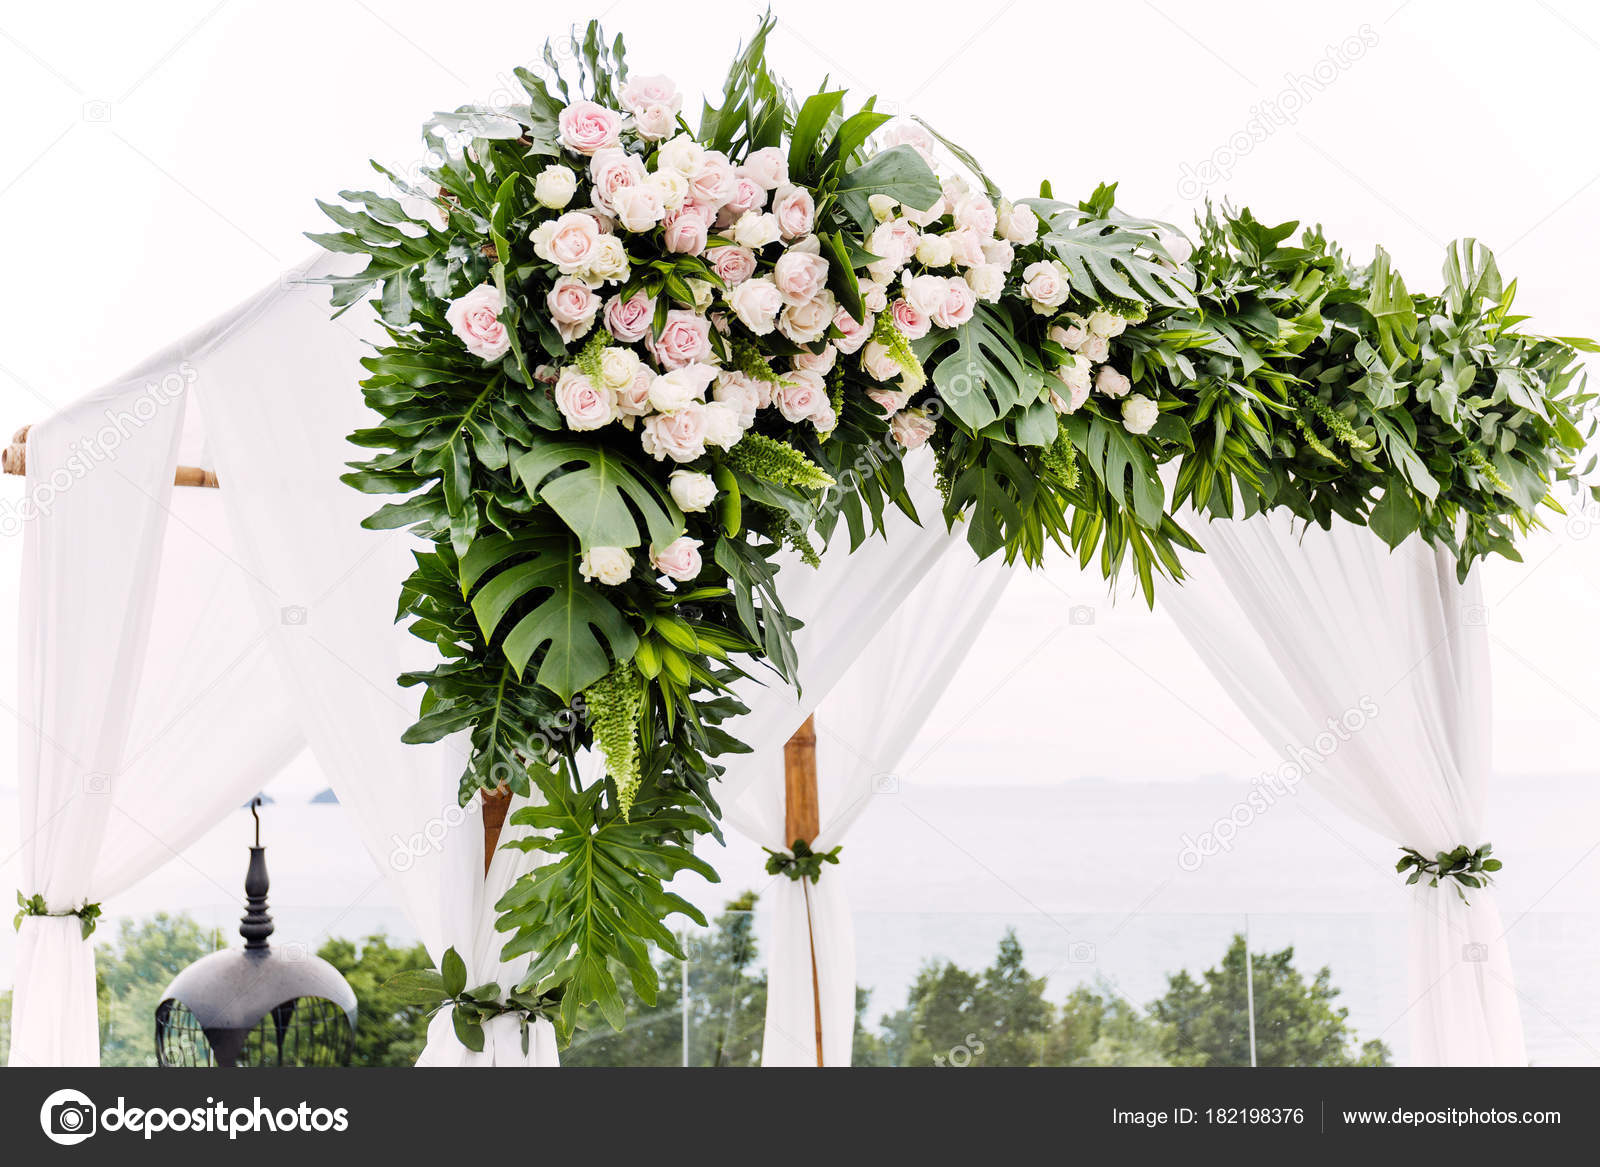 White wedding arch decorated flowers floral stock photo mrseksan white wedding arch decorated flowers floral stock photo junglespirit